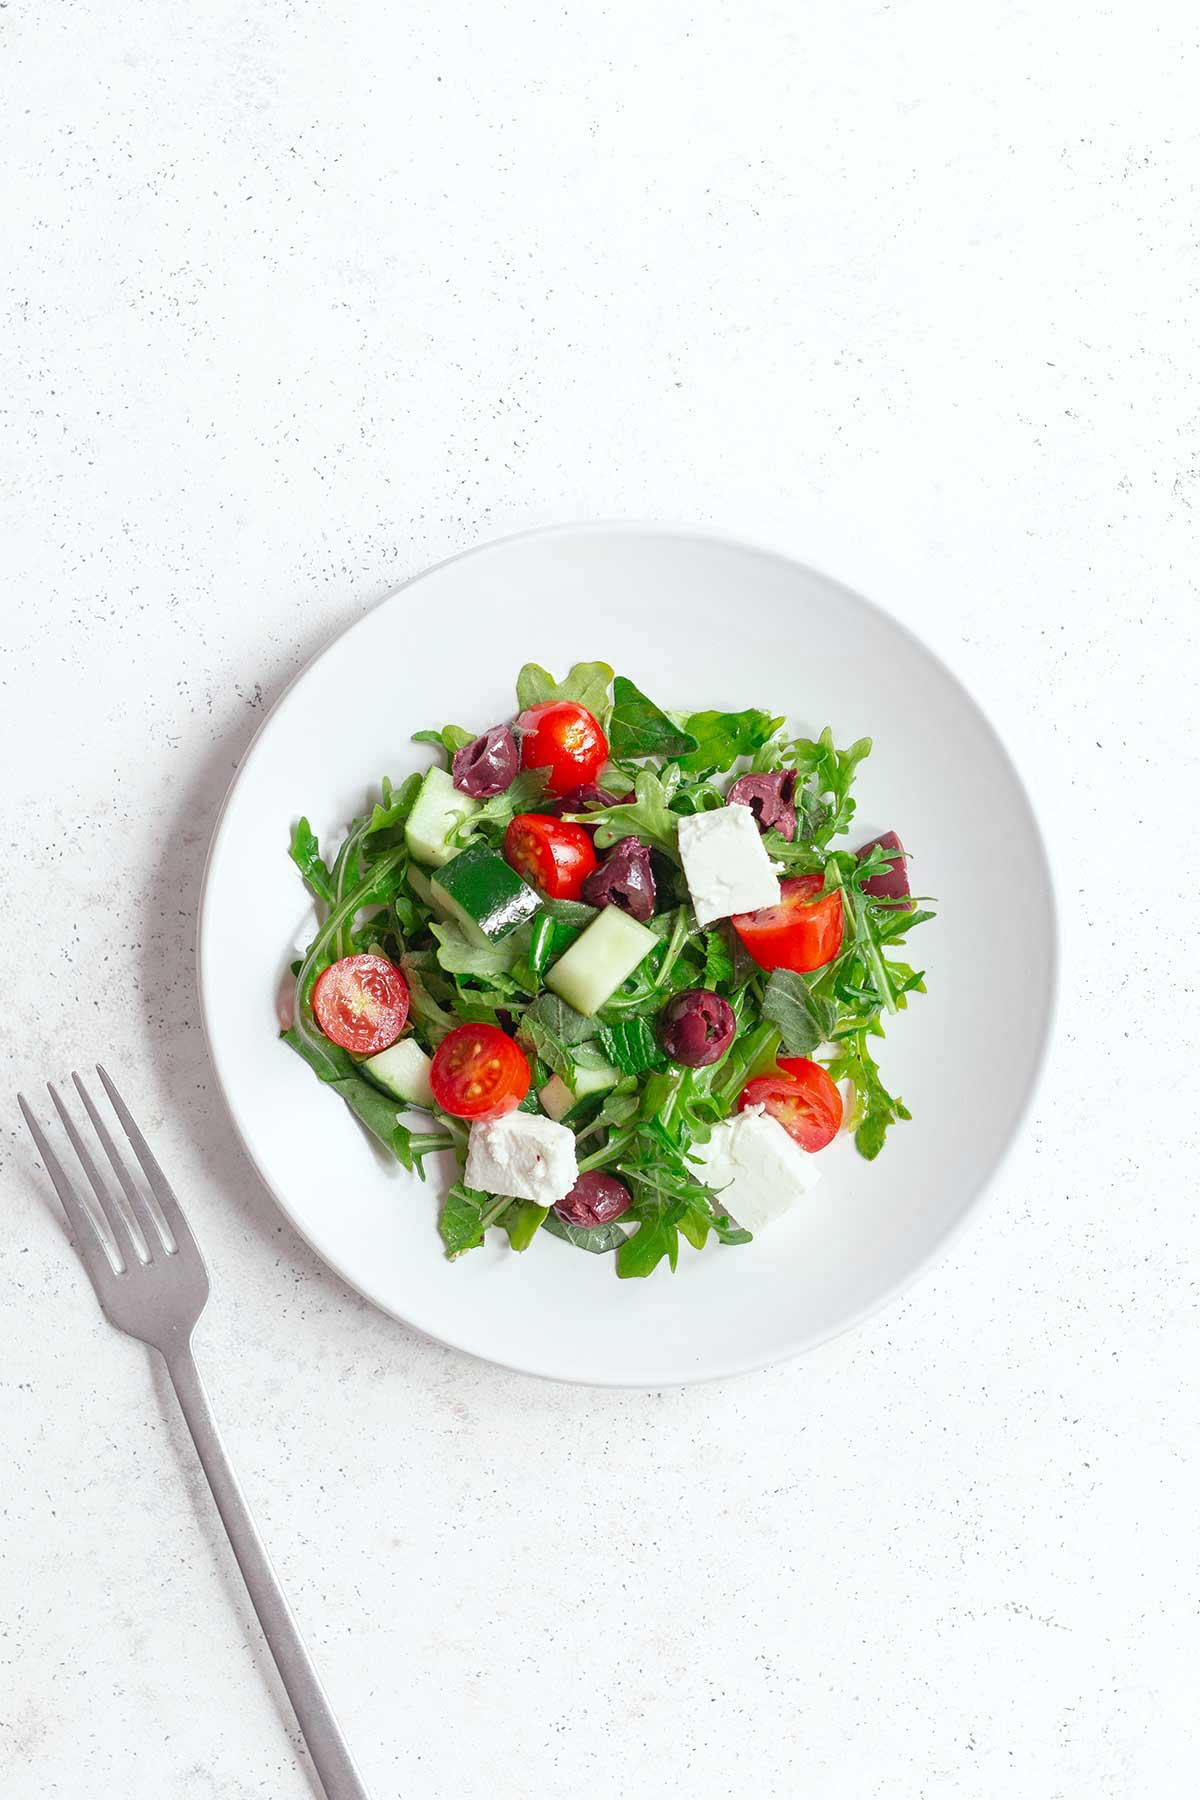 Finished Greek salad recipe on a plate